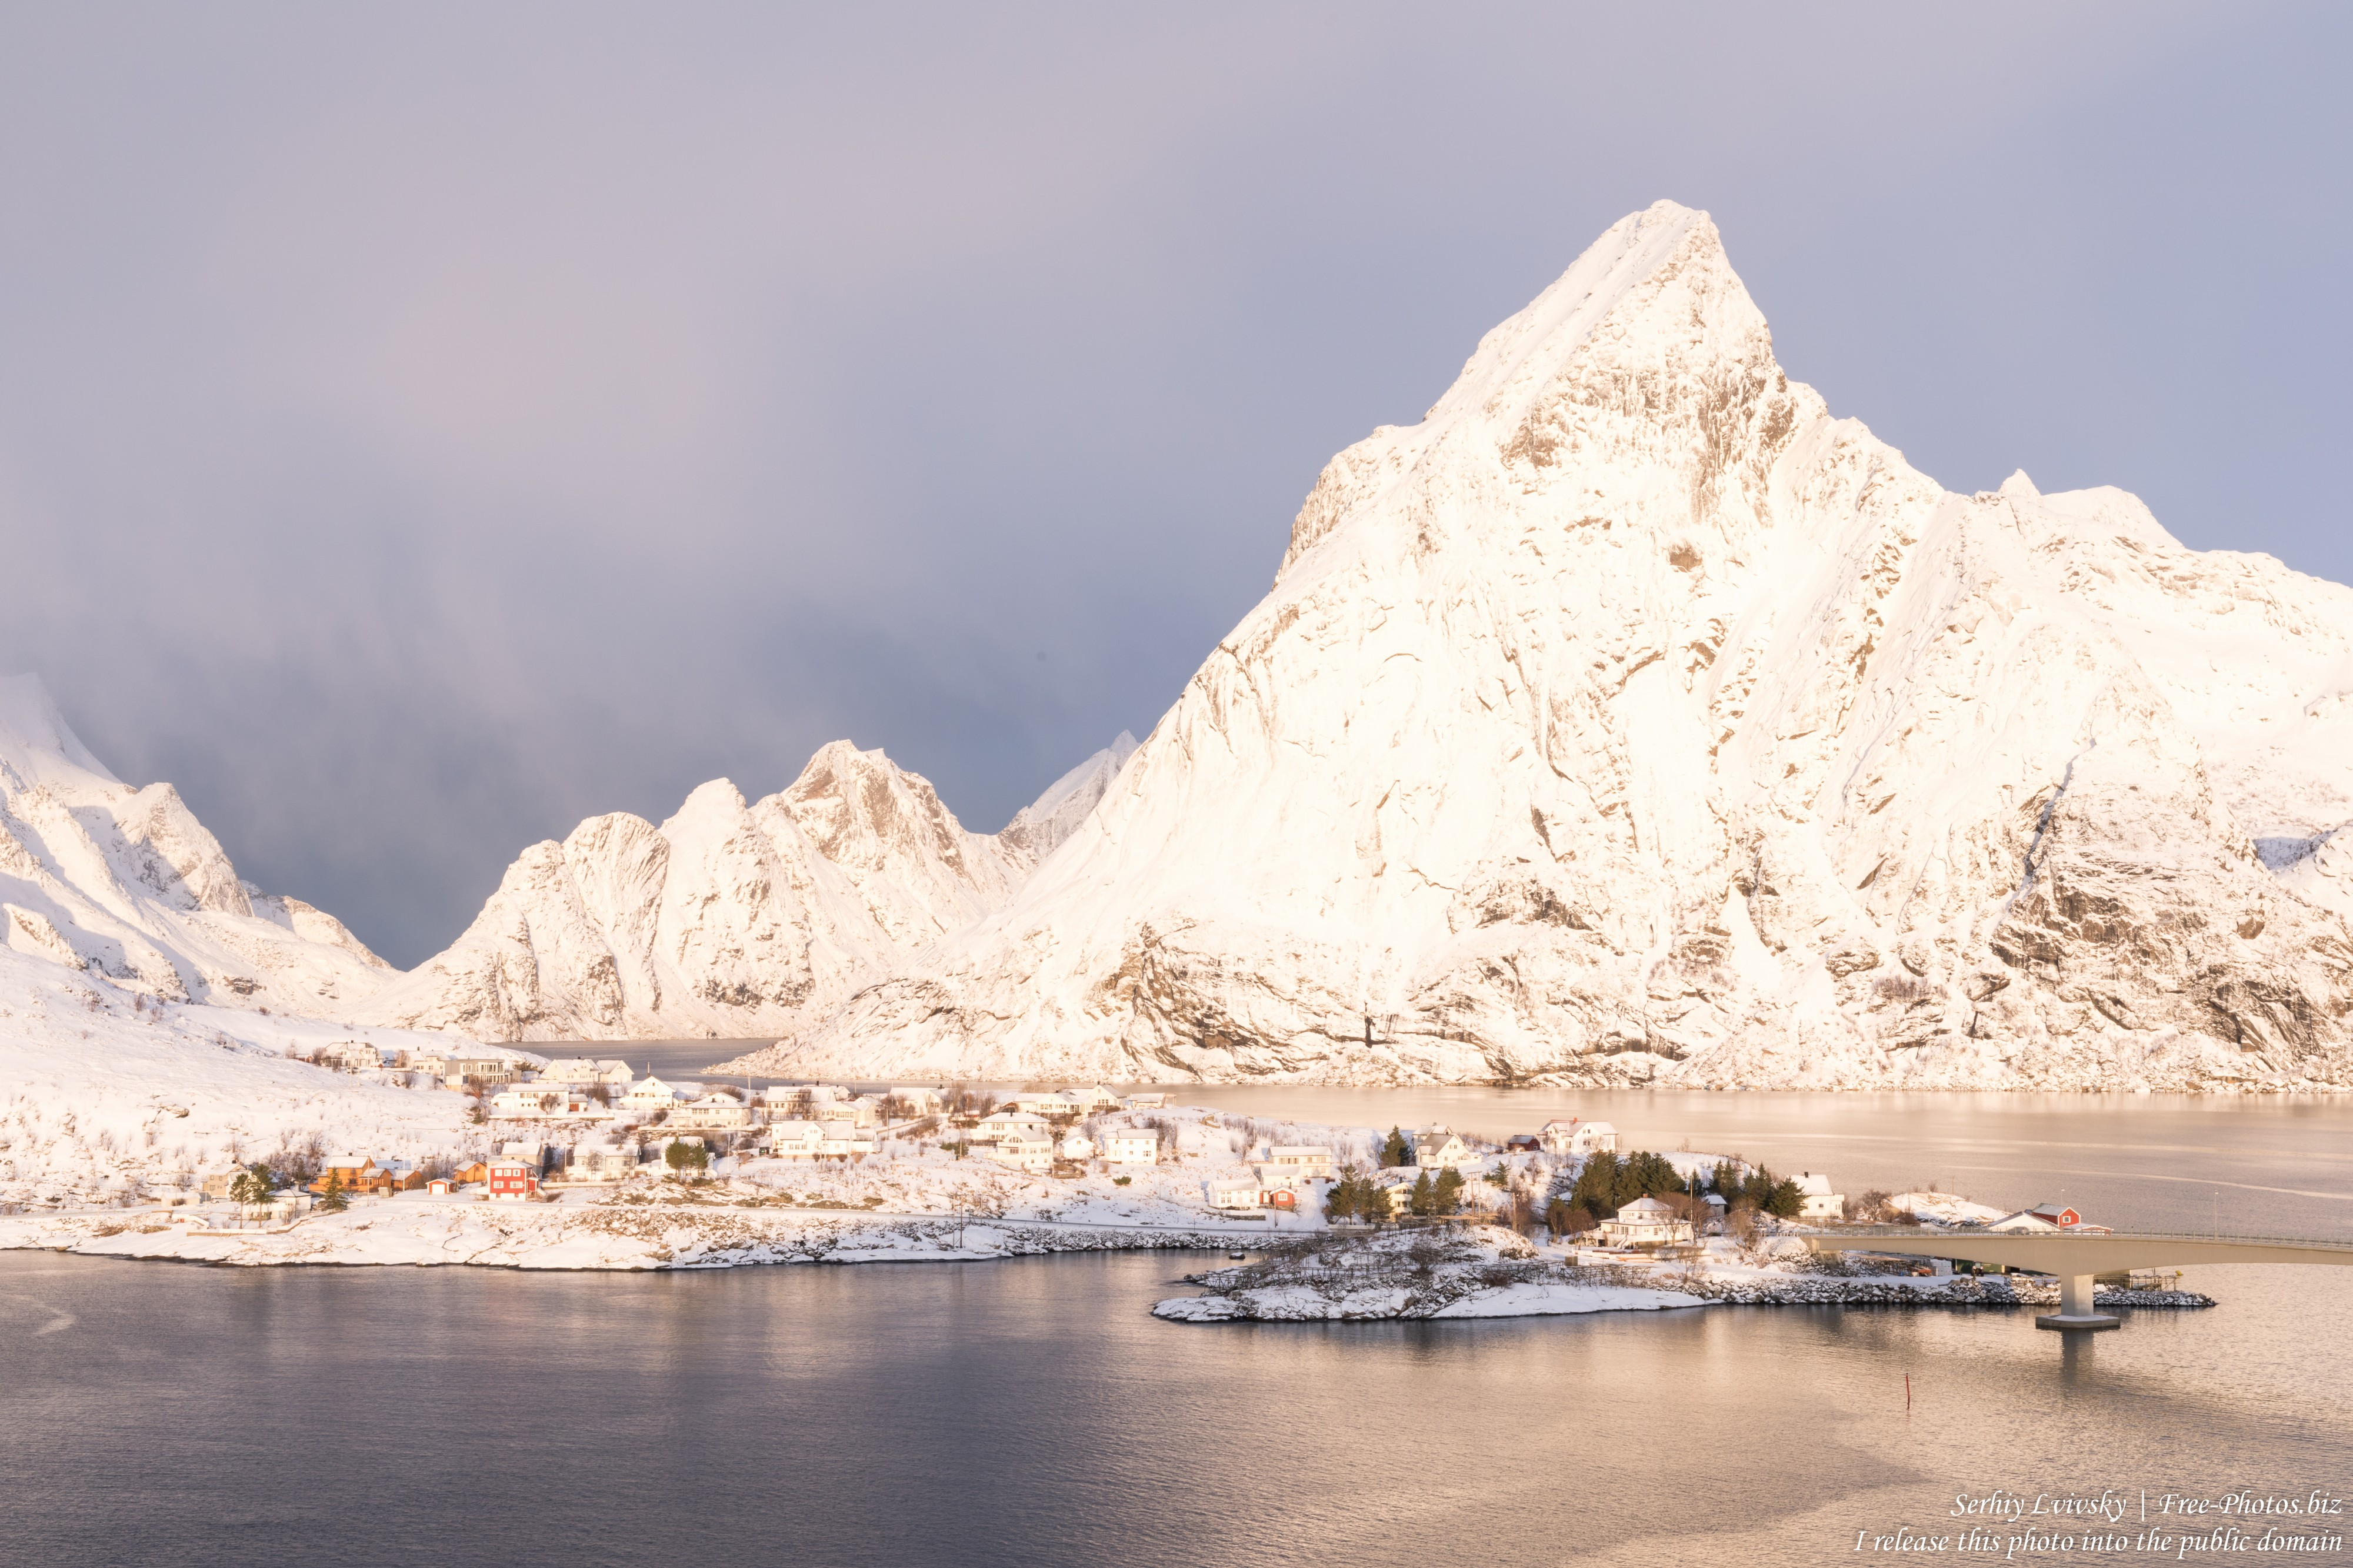 Sakrisoy and surroundings, Norway, in February 2020 by Serhiy Lvivsky, picture 27